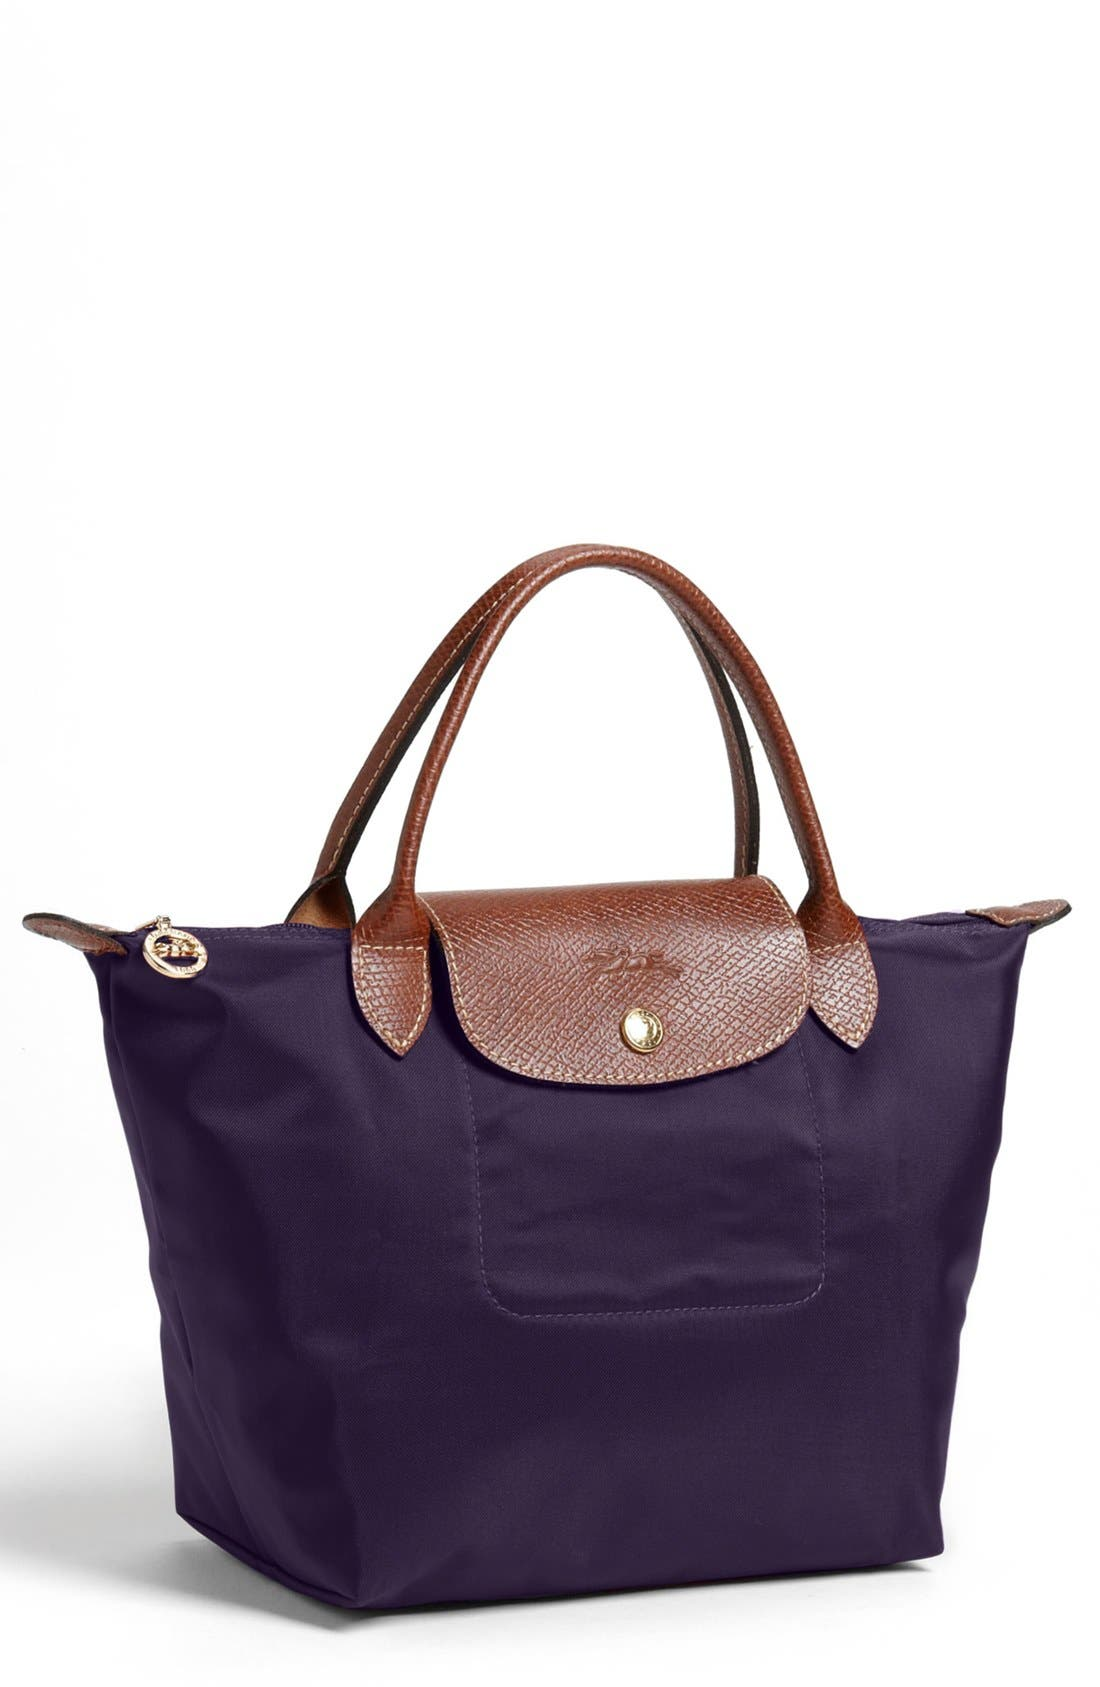 Longchamp 'Mini Le Pliage' Handbag